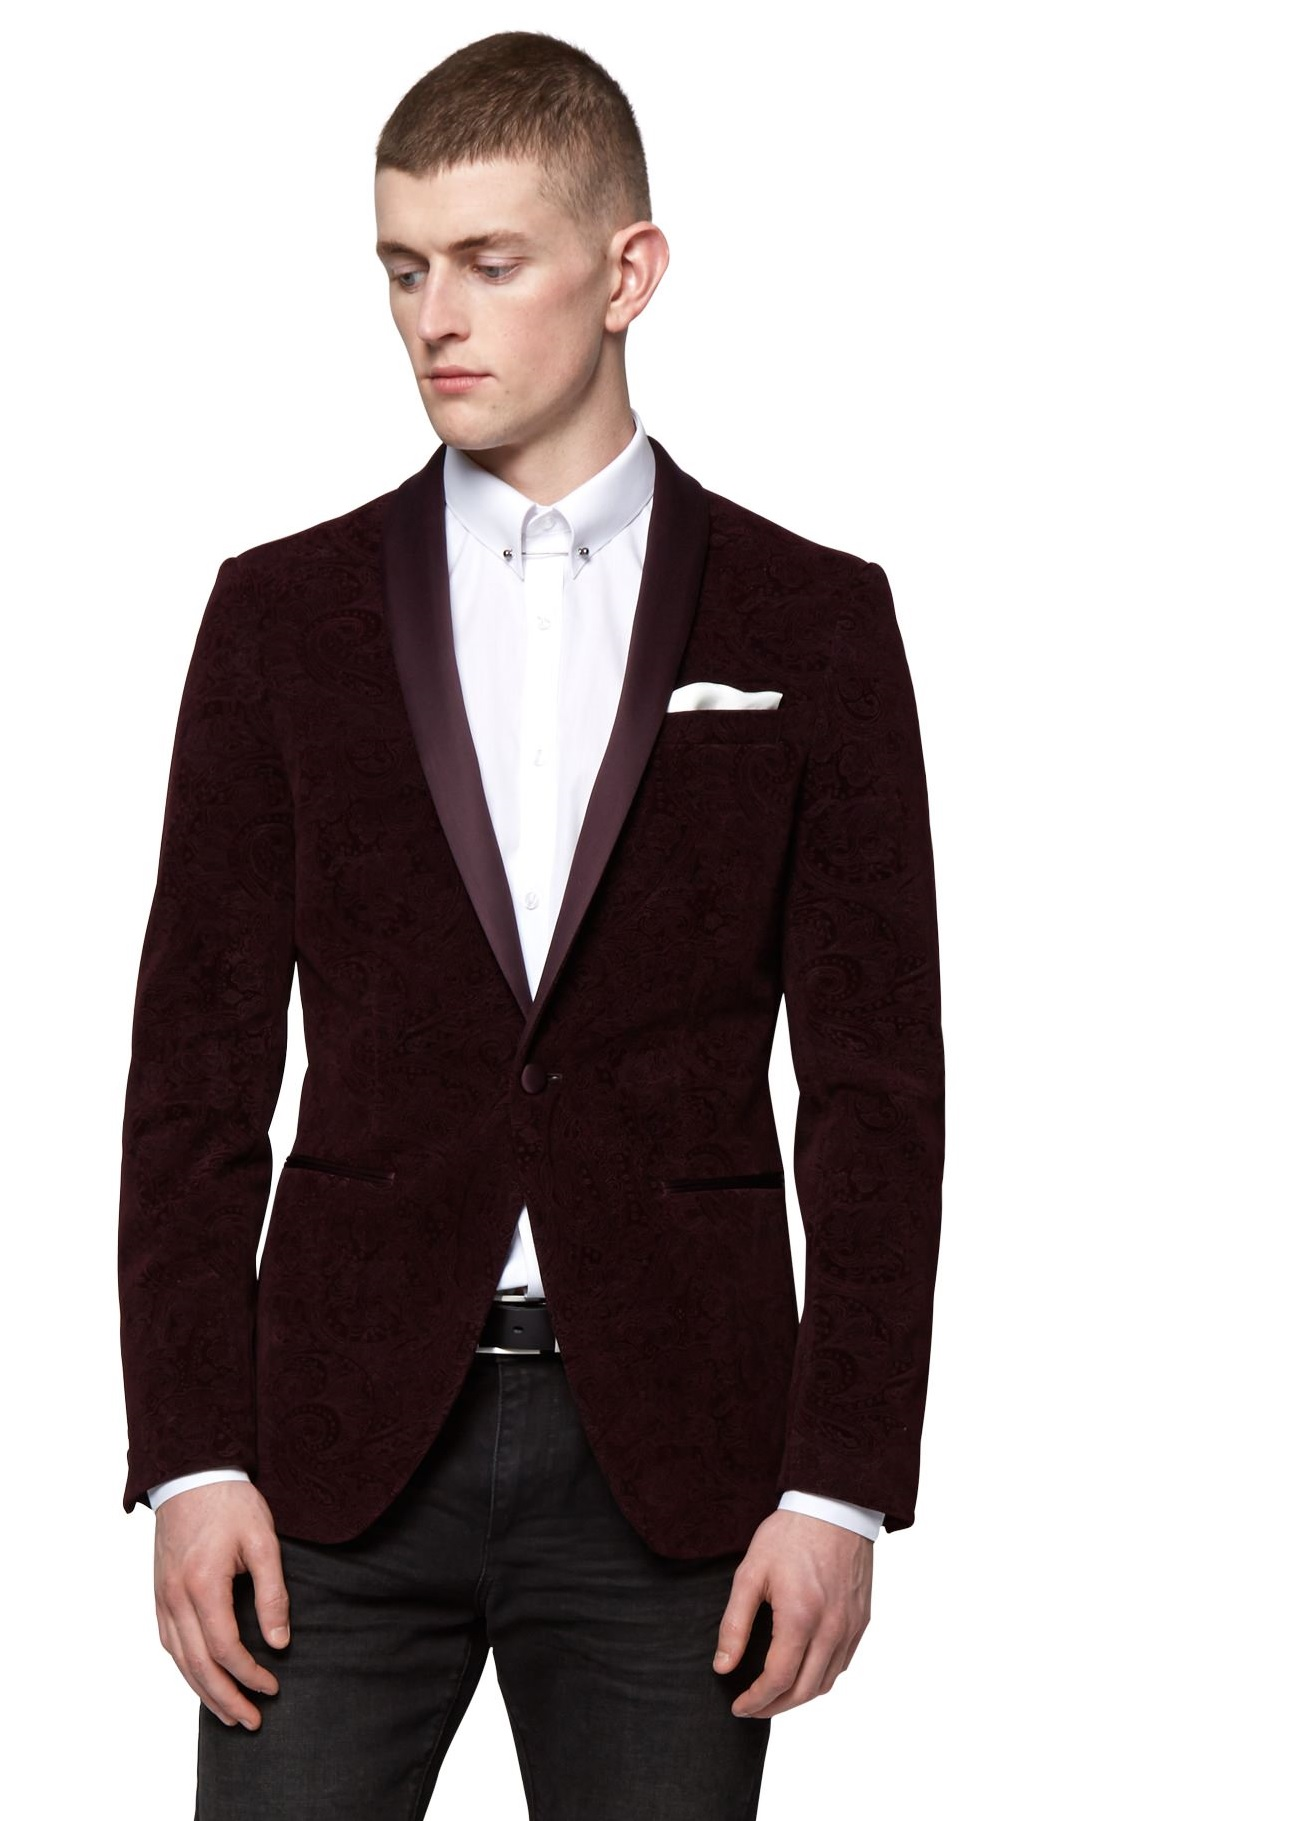 Discover our stylish range of men's blazers from ASOS. Shop from a variety of longline and classic styles and choose from soft velvet to a range of colors.